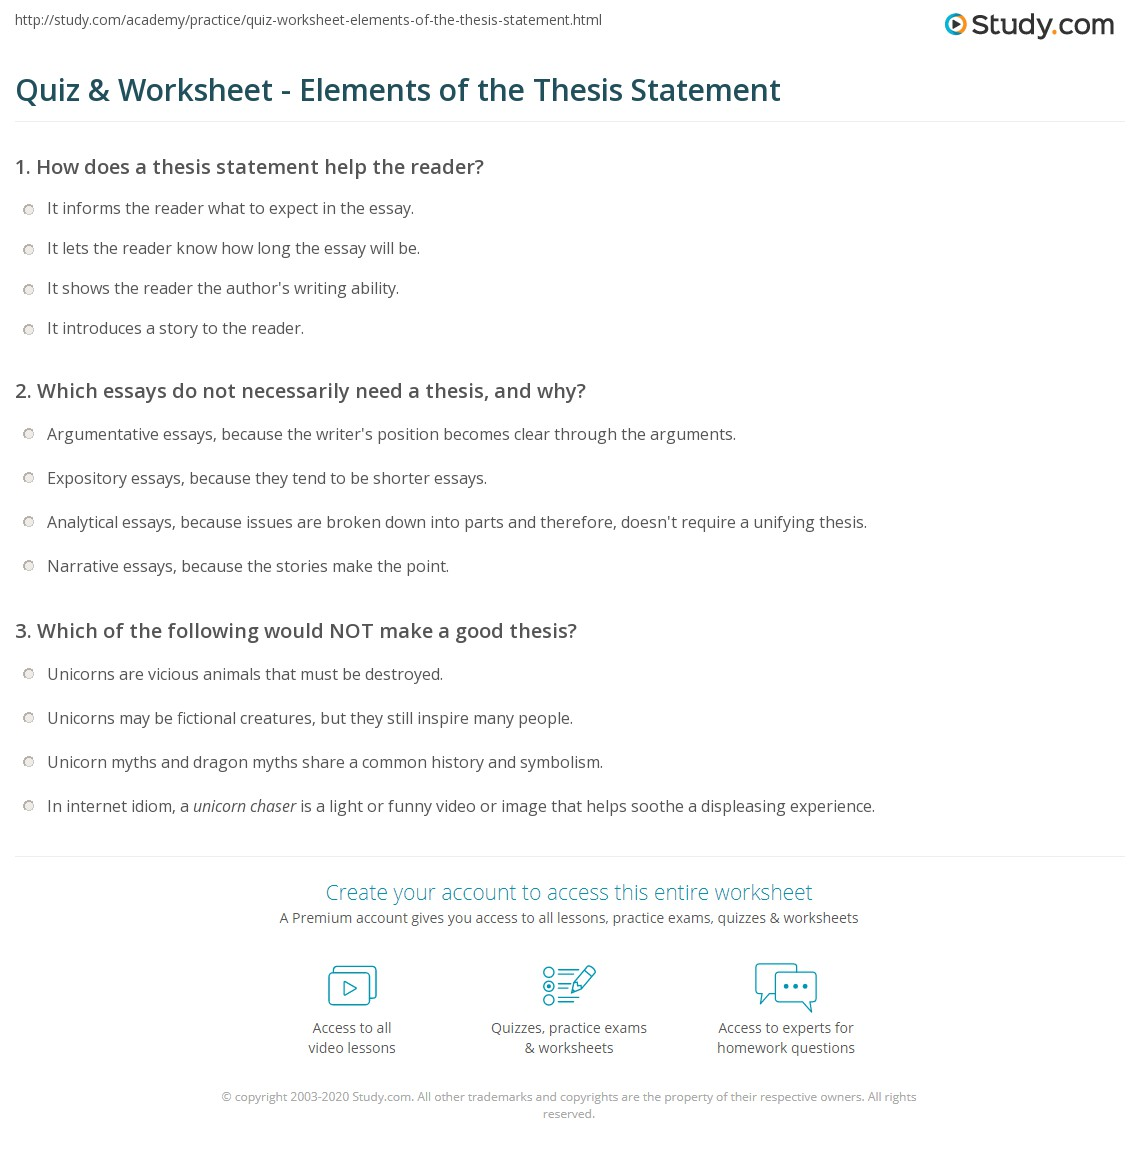 job search thesis statement How to generate a thesis statement if the topic is not assigned even if your assignment doesn't ask a specific question, your thesis statement still needs to answer a question about the issue you'd like to explore in this situation, your job is to figure out what question you'd like to write about a good thesis statement will.